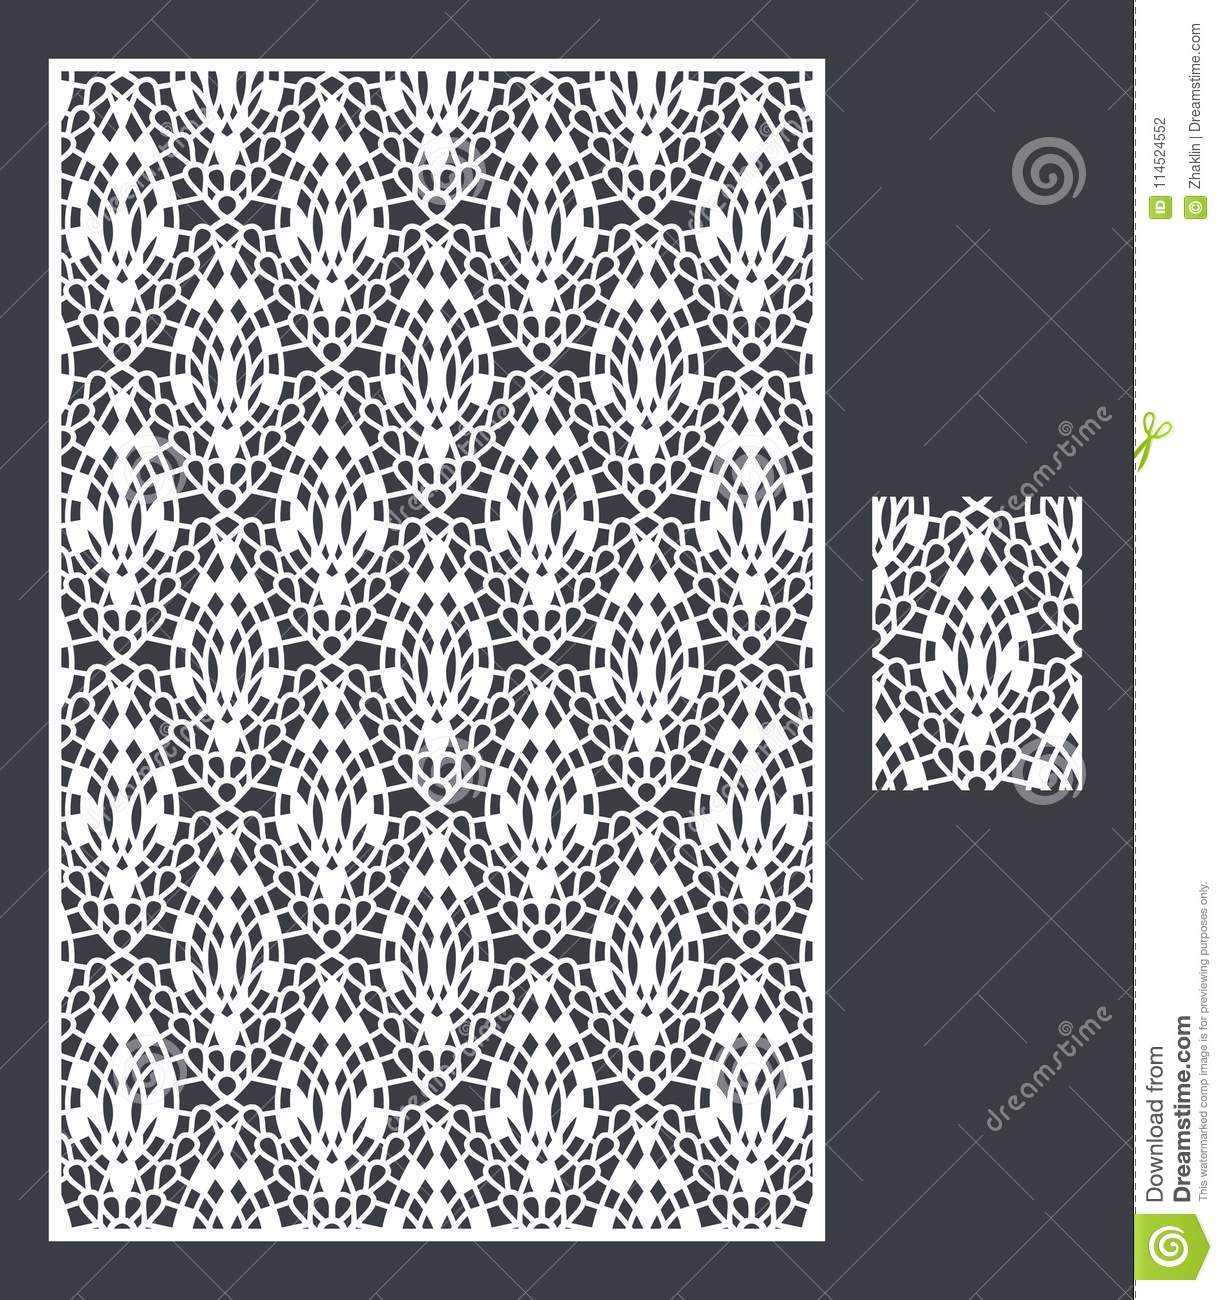 Laser Cut Vector Panel And The Seamless Pattern For Decorative Panel ...